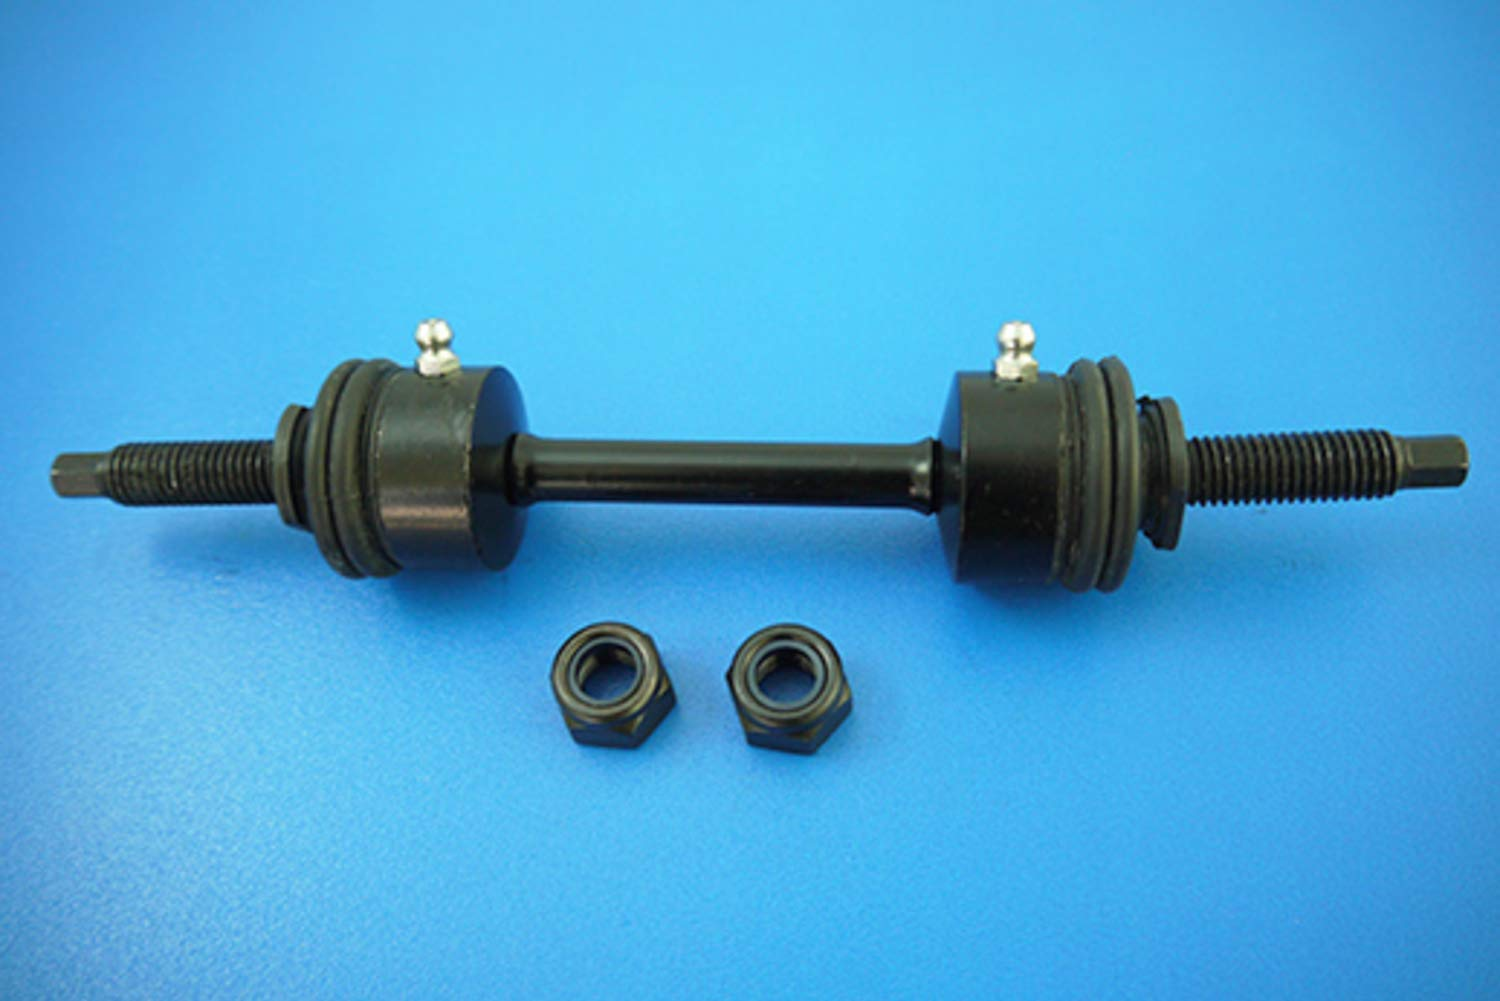 2012 fits Ford F-150 Front Suspension Stabilizer Bar Link With Five Years Warranty Note: 4WD